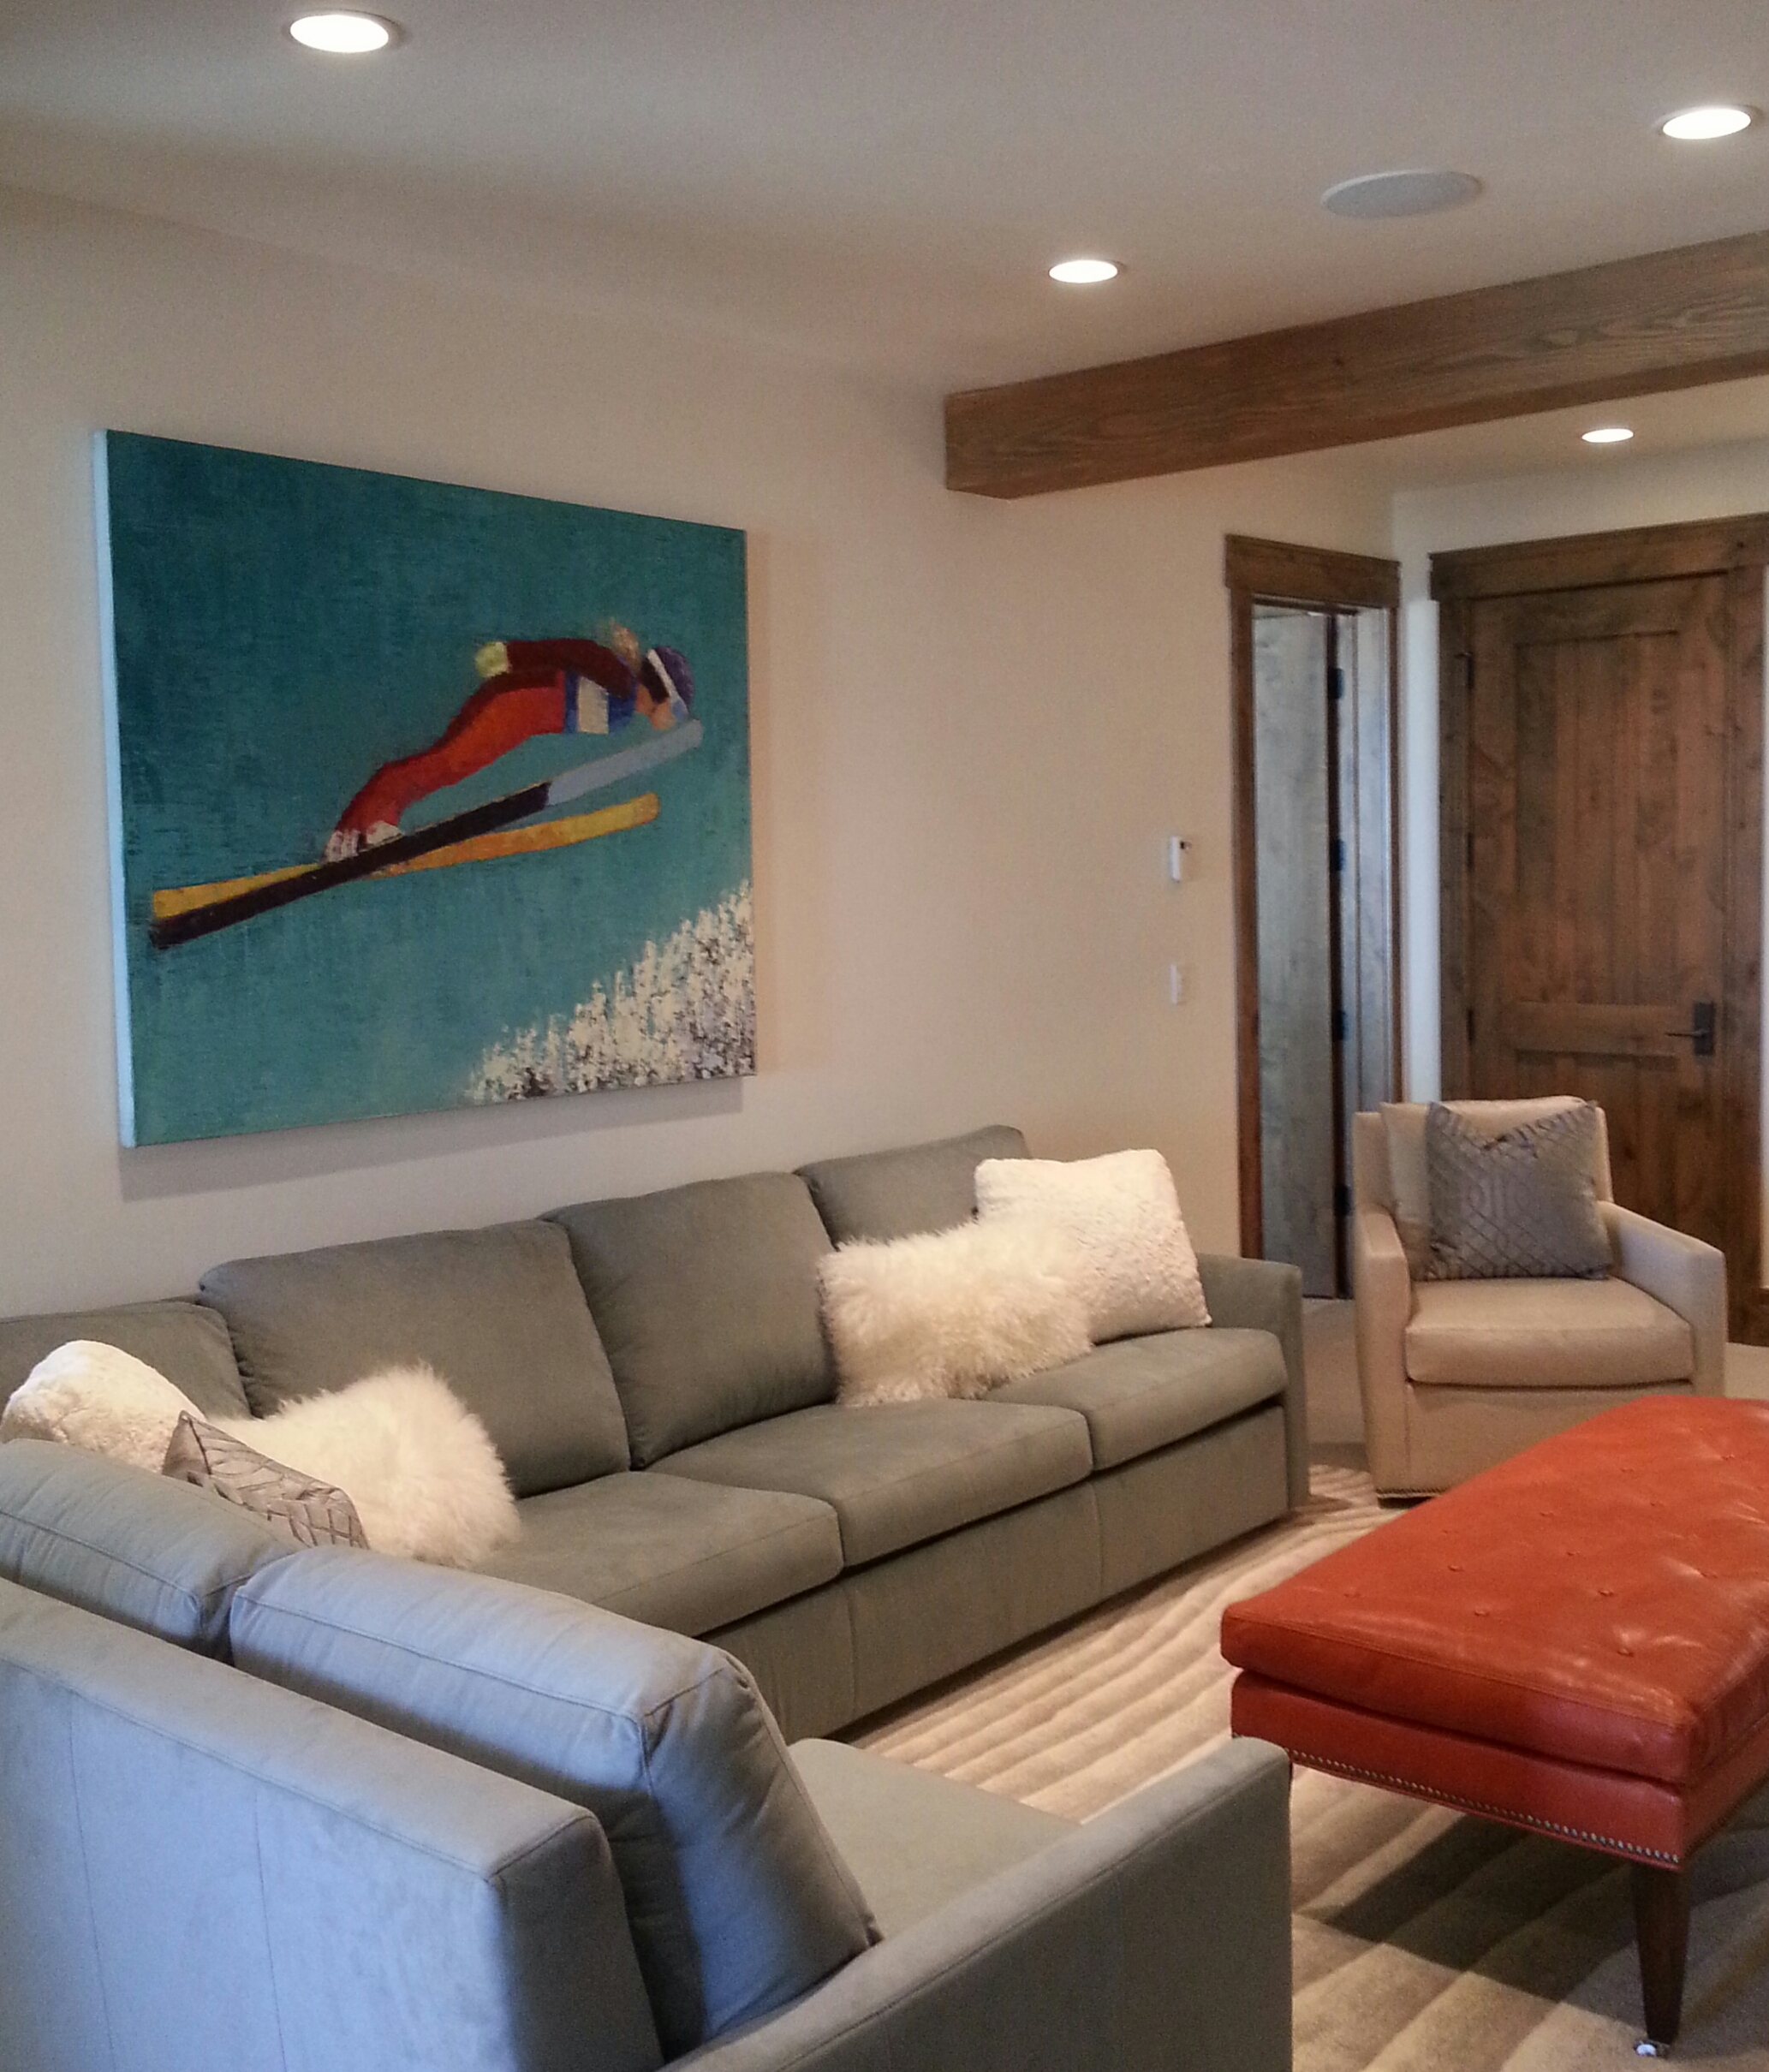 """""""Flight"""" by Rebecca Kinkead, was selected to set the tone for this Deer Valley home's room"""